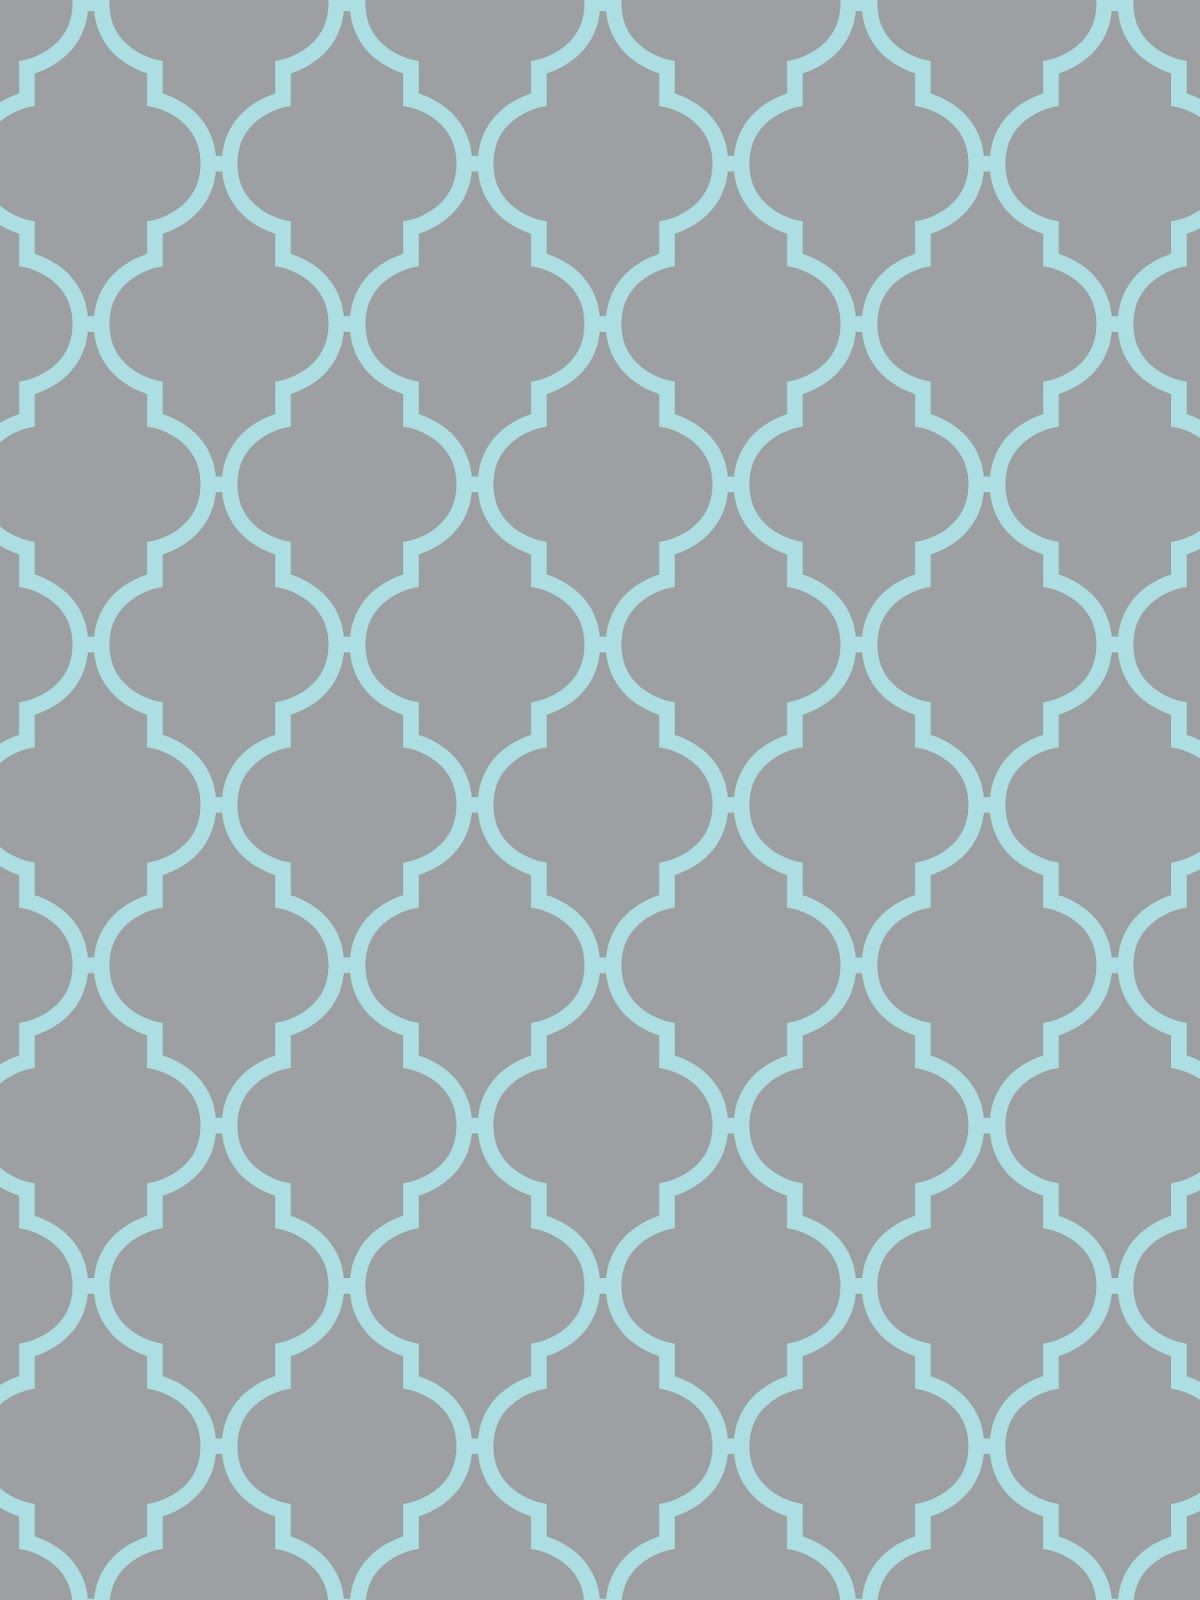 cc79be339 Make it...Create--Printables   Backgrounds Wallpapers  Quatrefoil...Light  Gray with Yellow